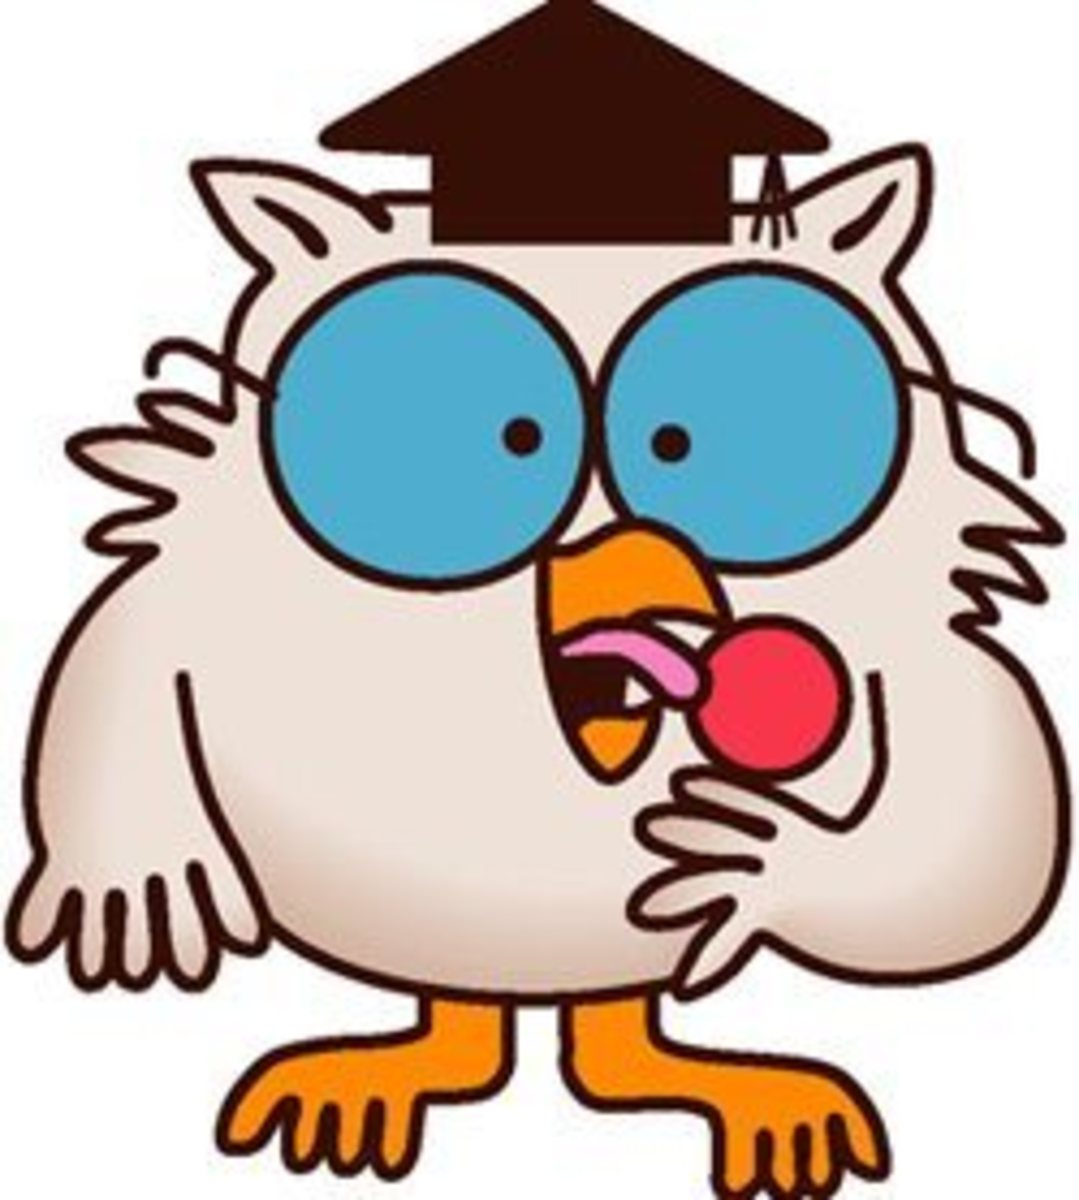 The infamous owl. How many licks does it take?